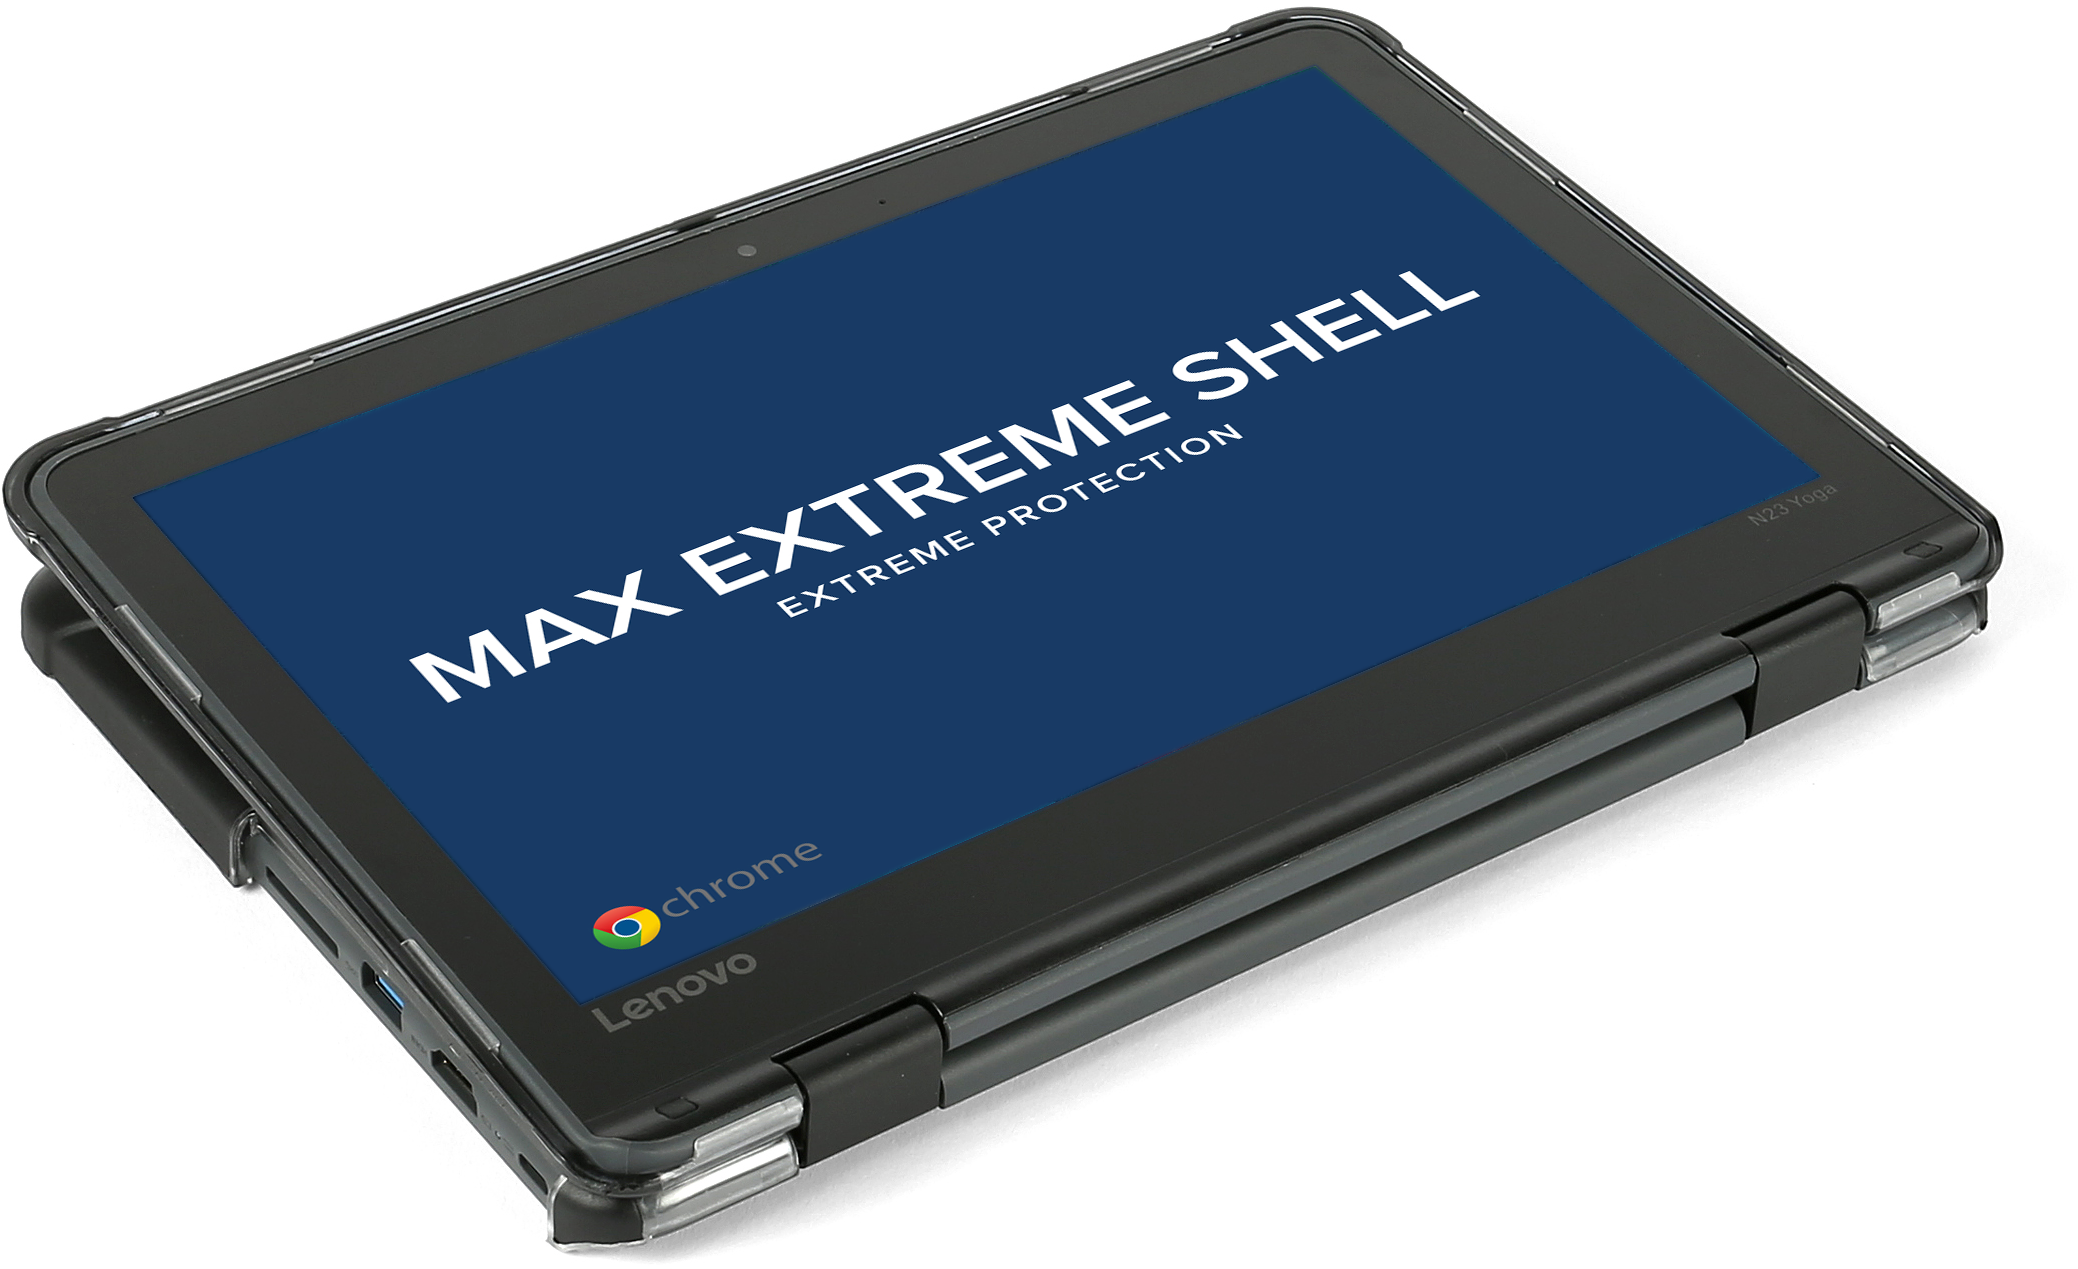 Extreme Shell for Lenovo N23/300e Chromebook Yoga/300e G1